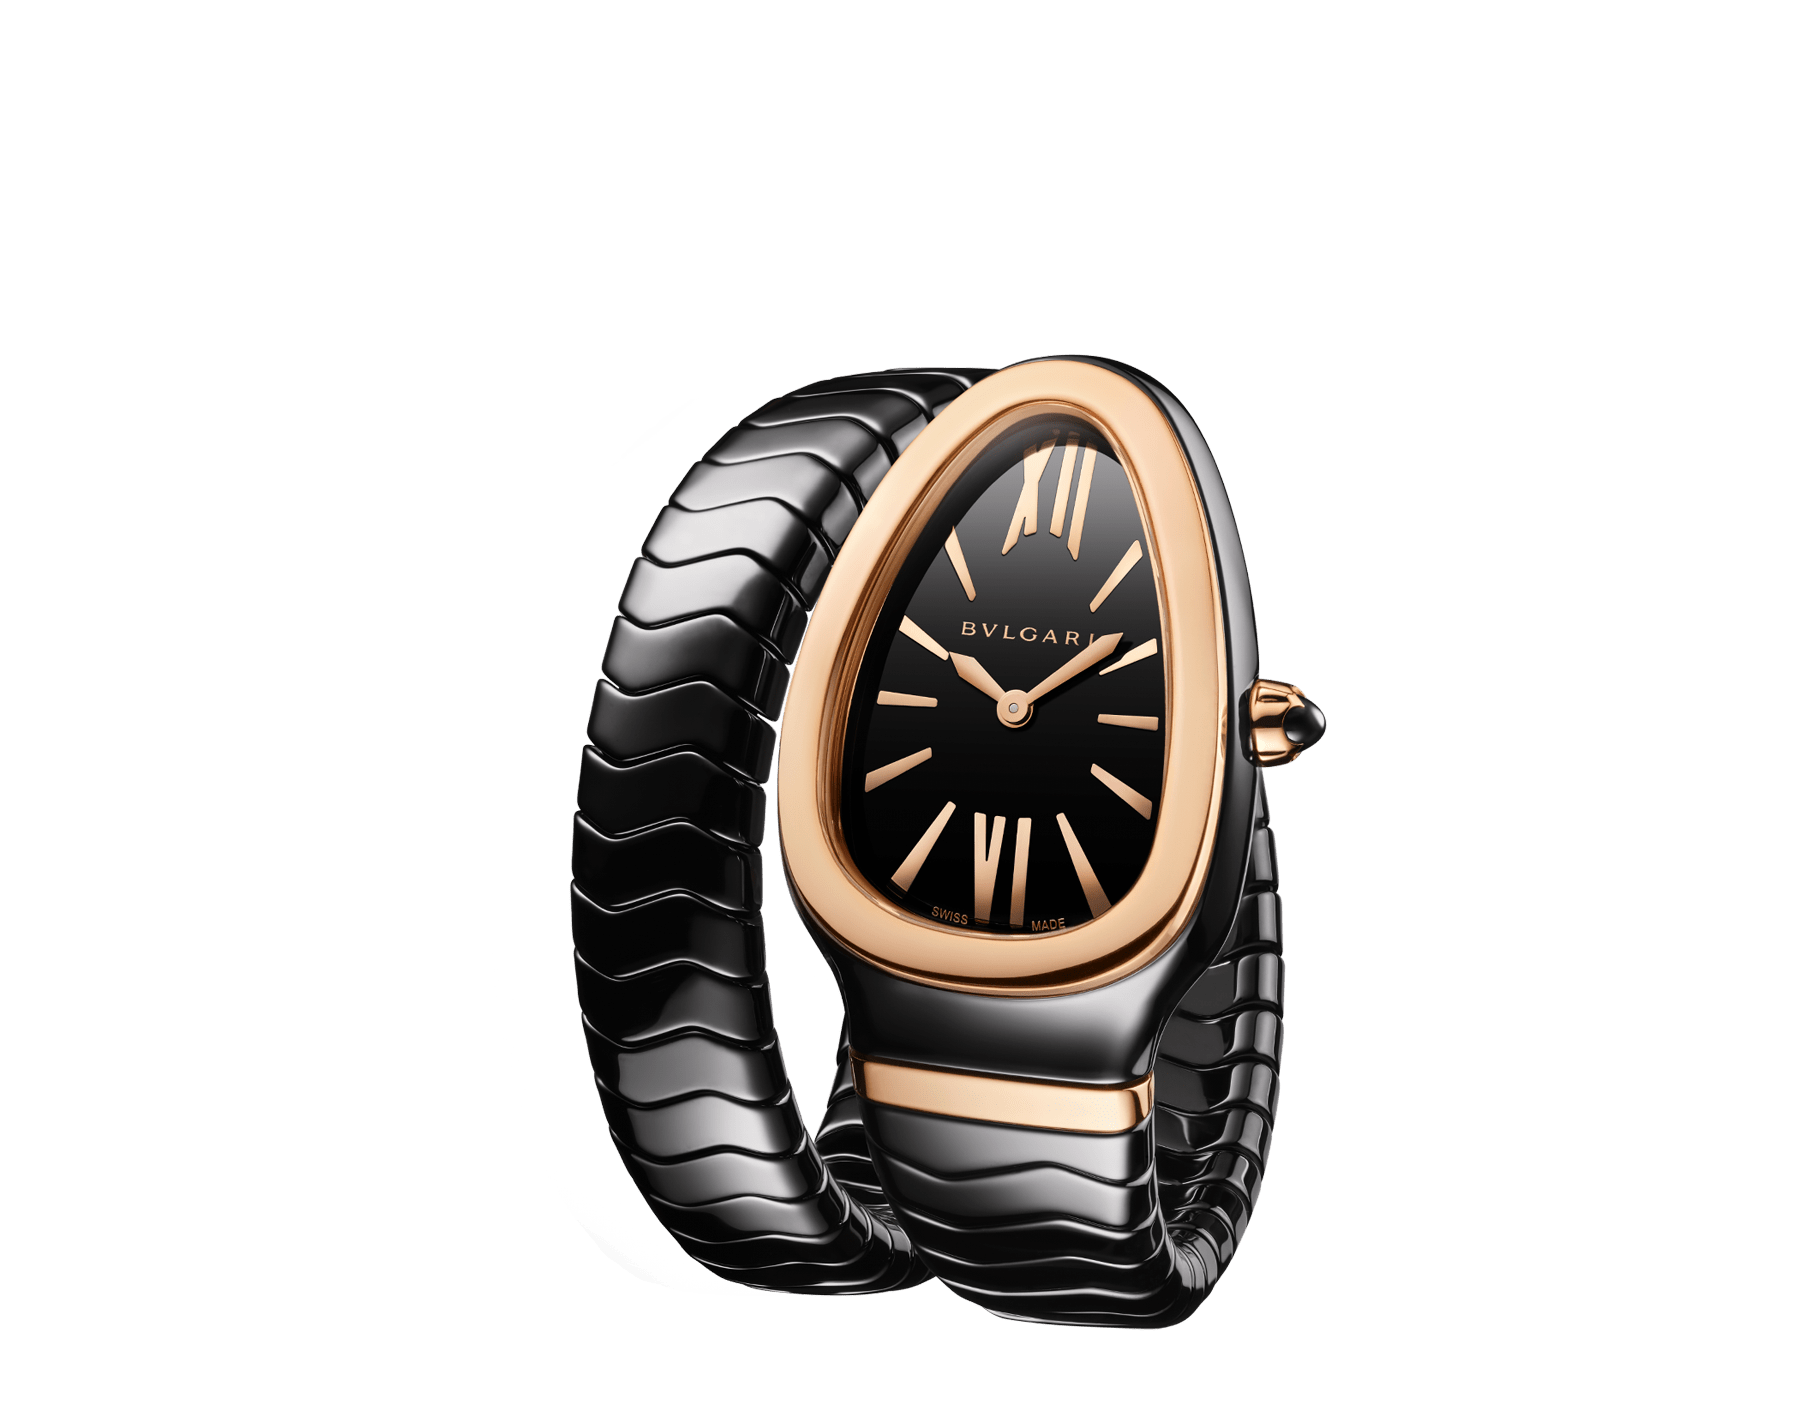 Serpenti Spiga single spiral watch with black ceramic case, 18 kt rose gold bezel, black lacquered dial and black ceramic bracelet set with 18 kt rose gold elements. 102735 image 2